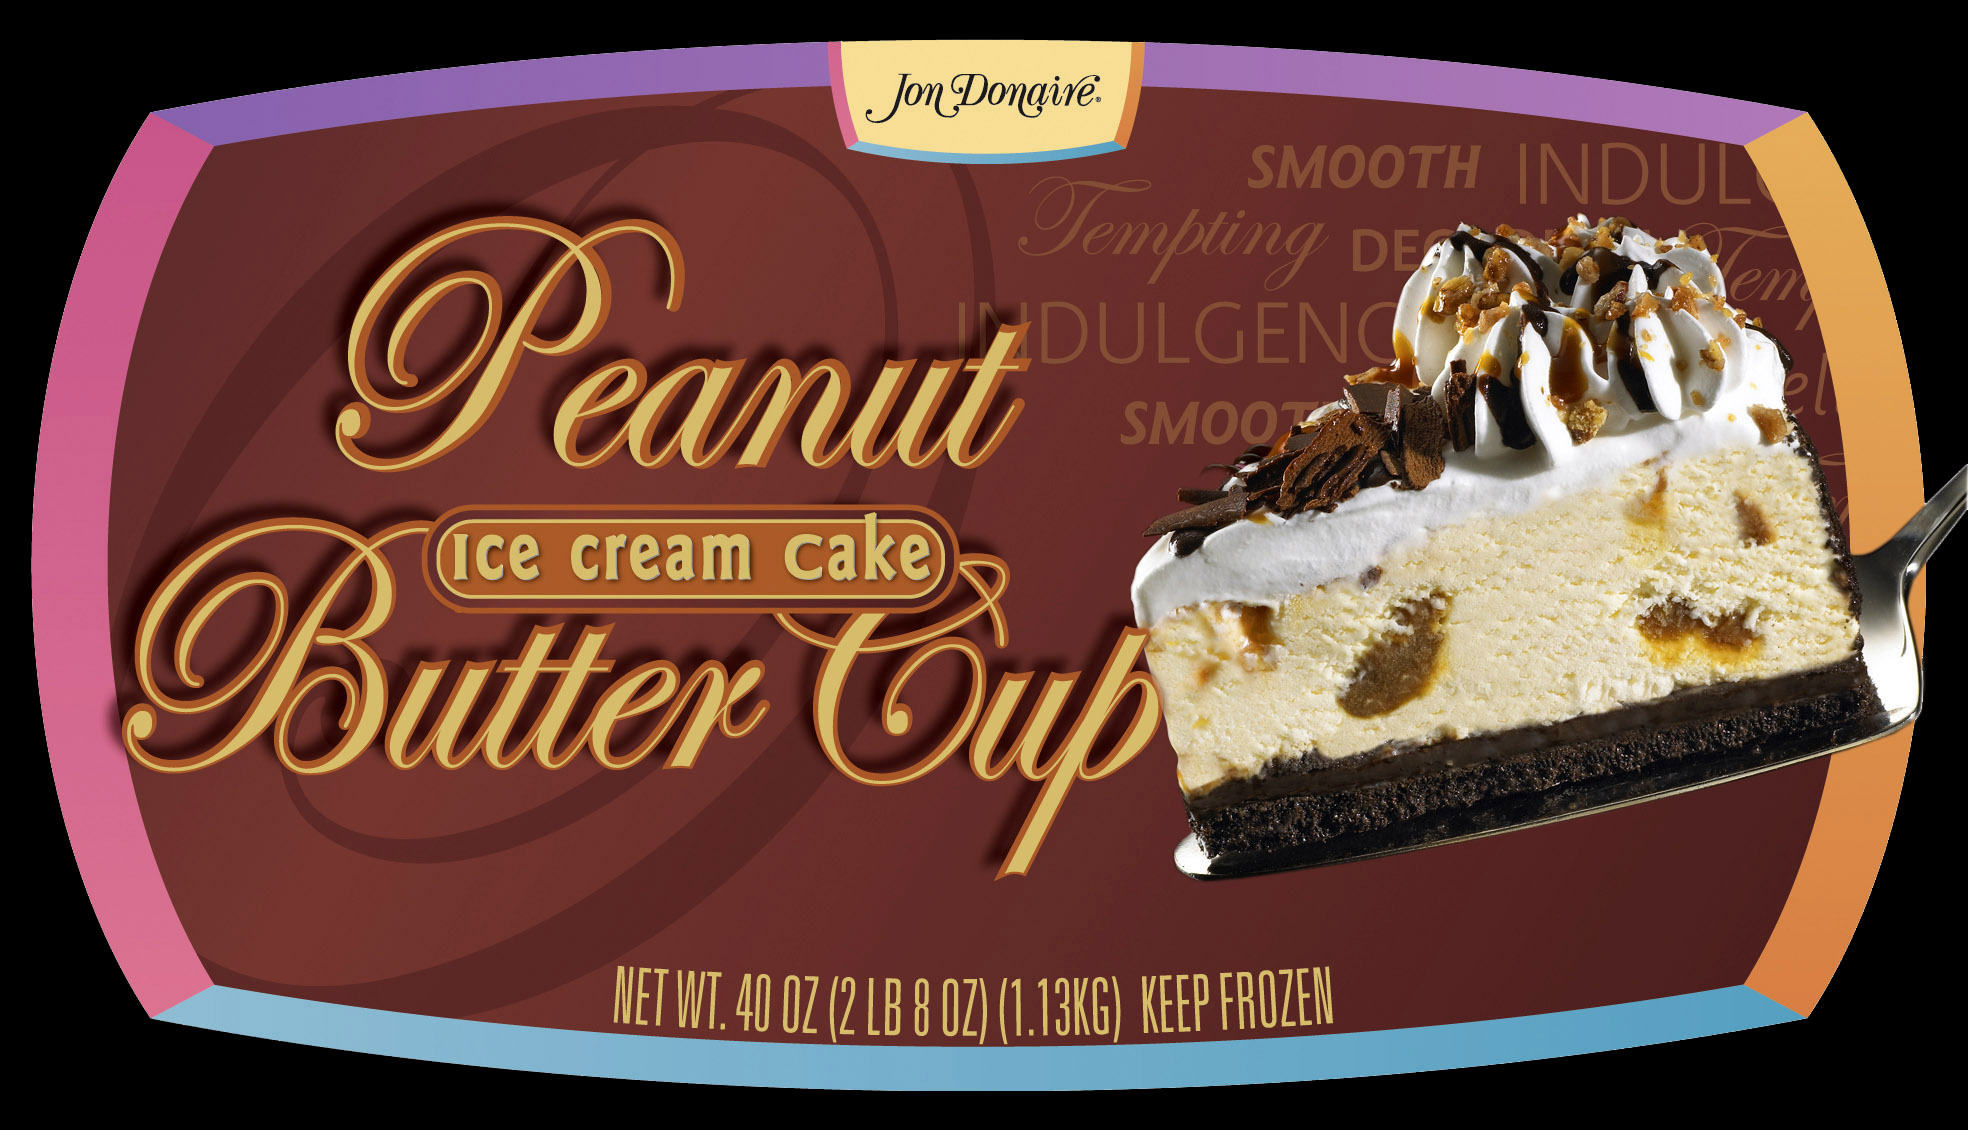 Jon Donaire_Richs_Food Packaging Photography_Food Photography_Ice Cream Cake